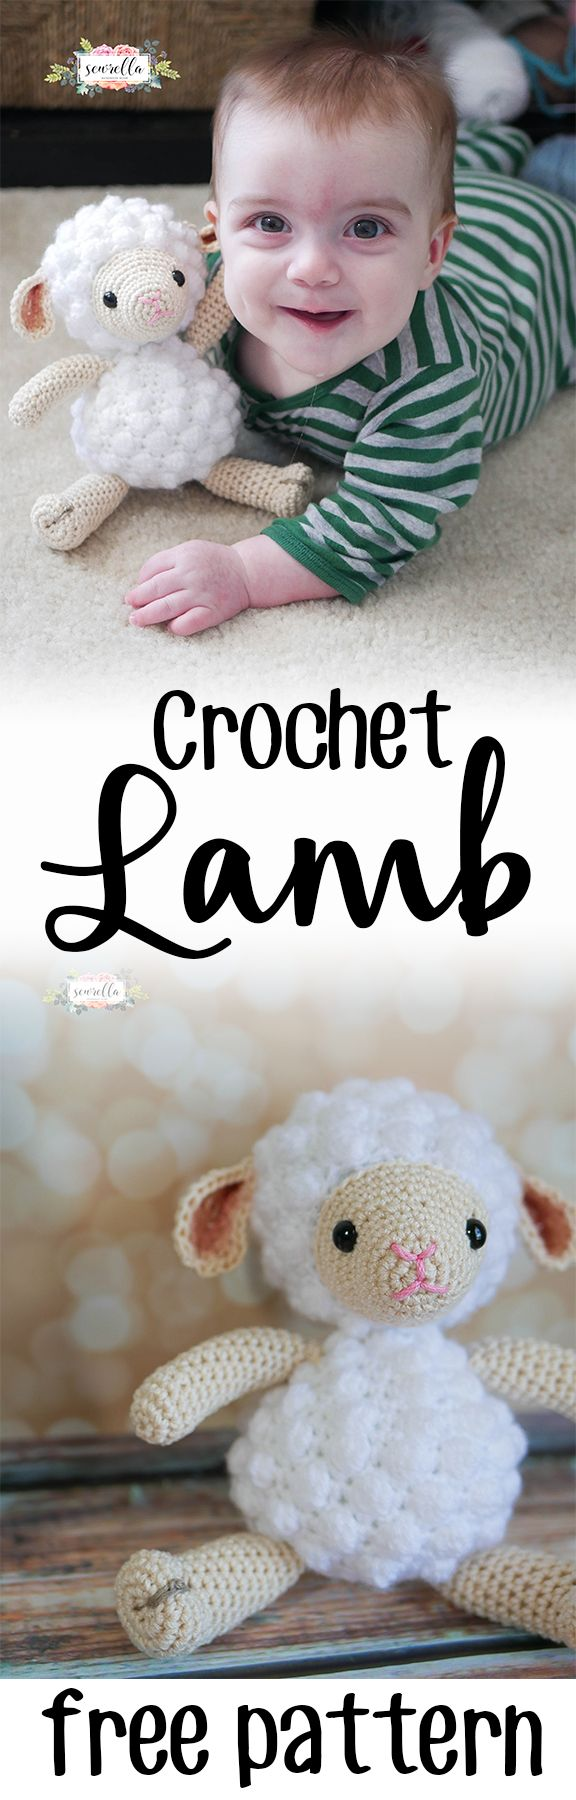 Little crochet lamb amigurumi pattern | perfect for baby showers, new mom gifts, or kids birthdays! | Free pattern from Sewrella #ad #BearyMerryVTechMom VTech USA